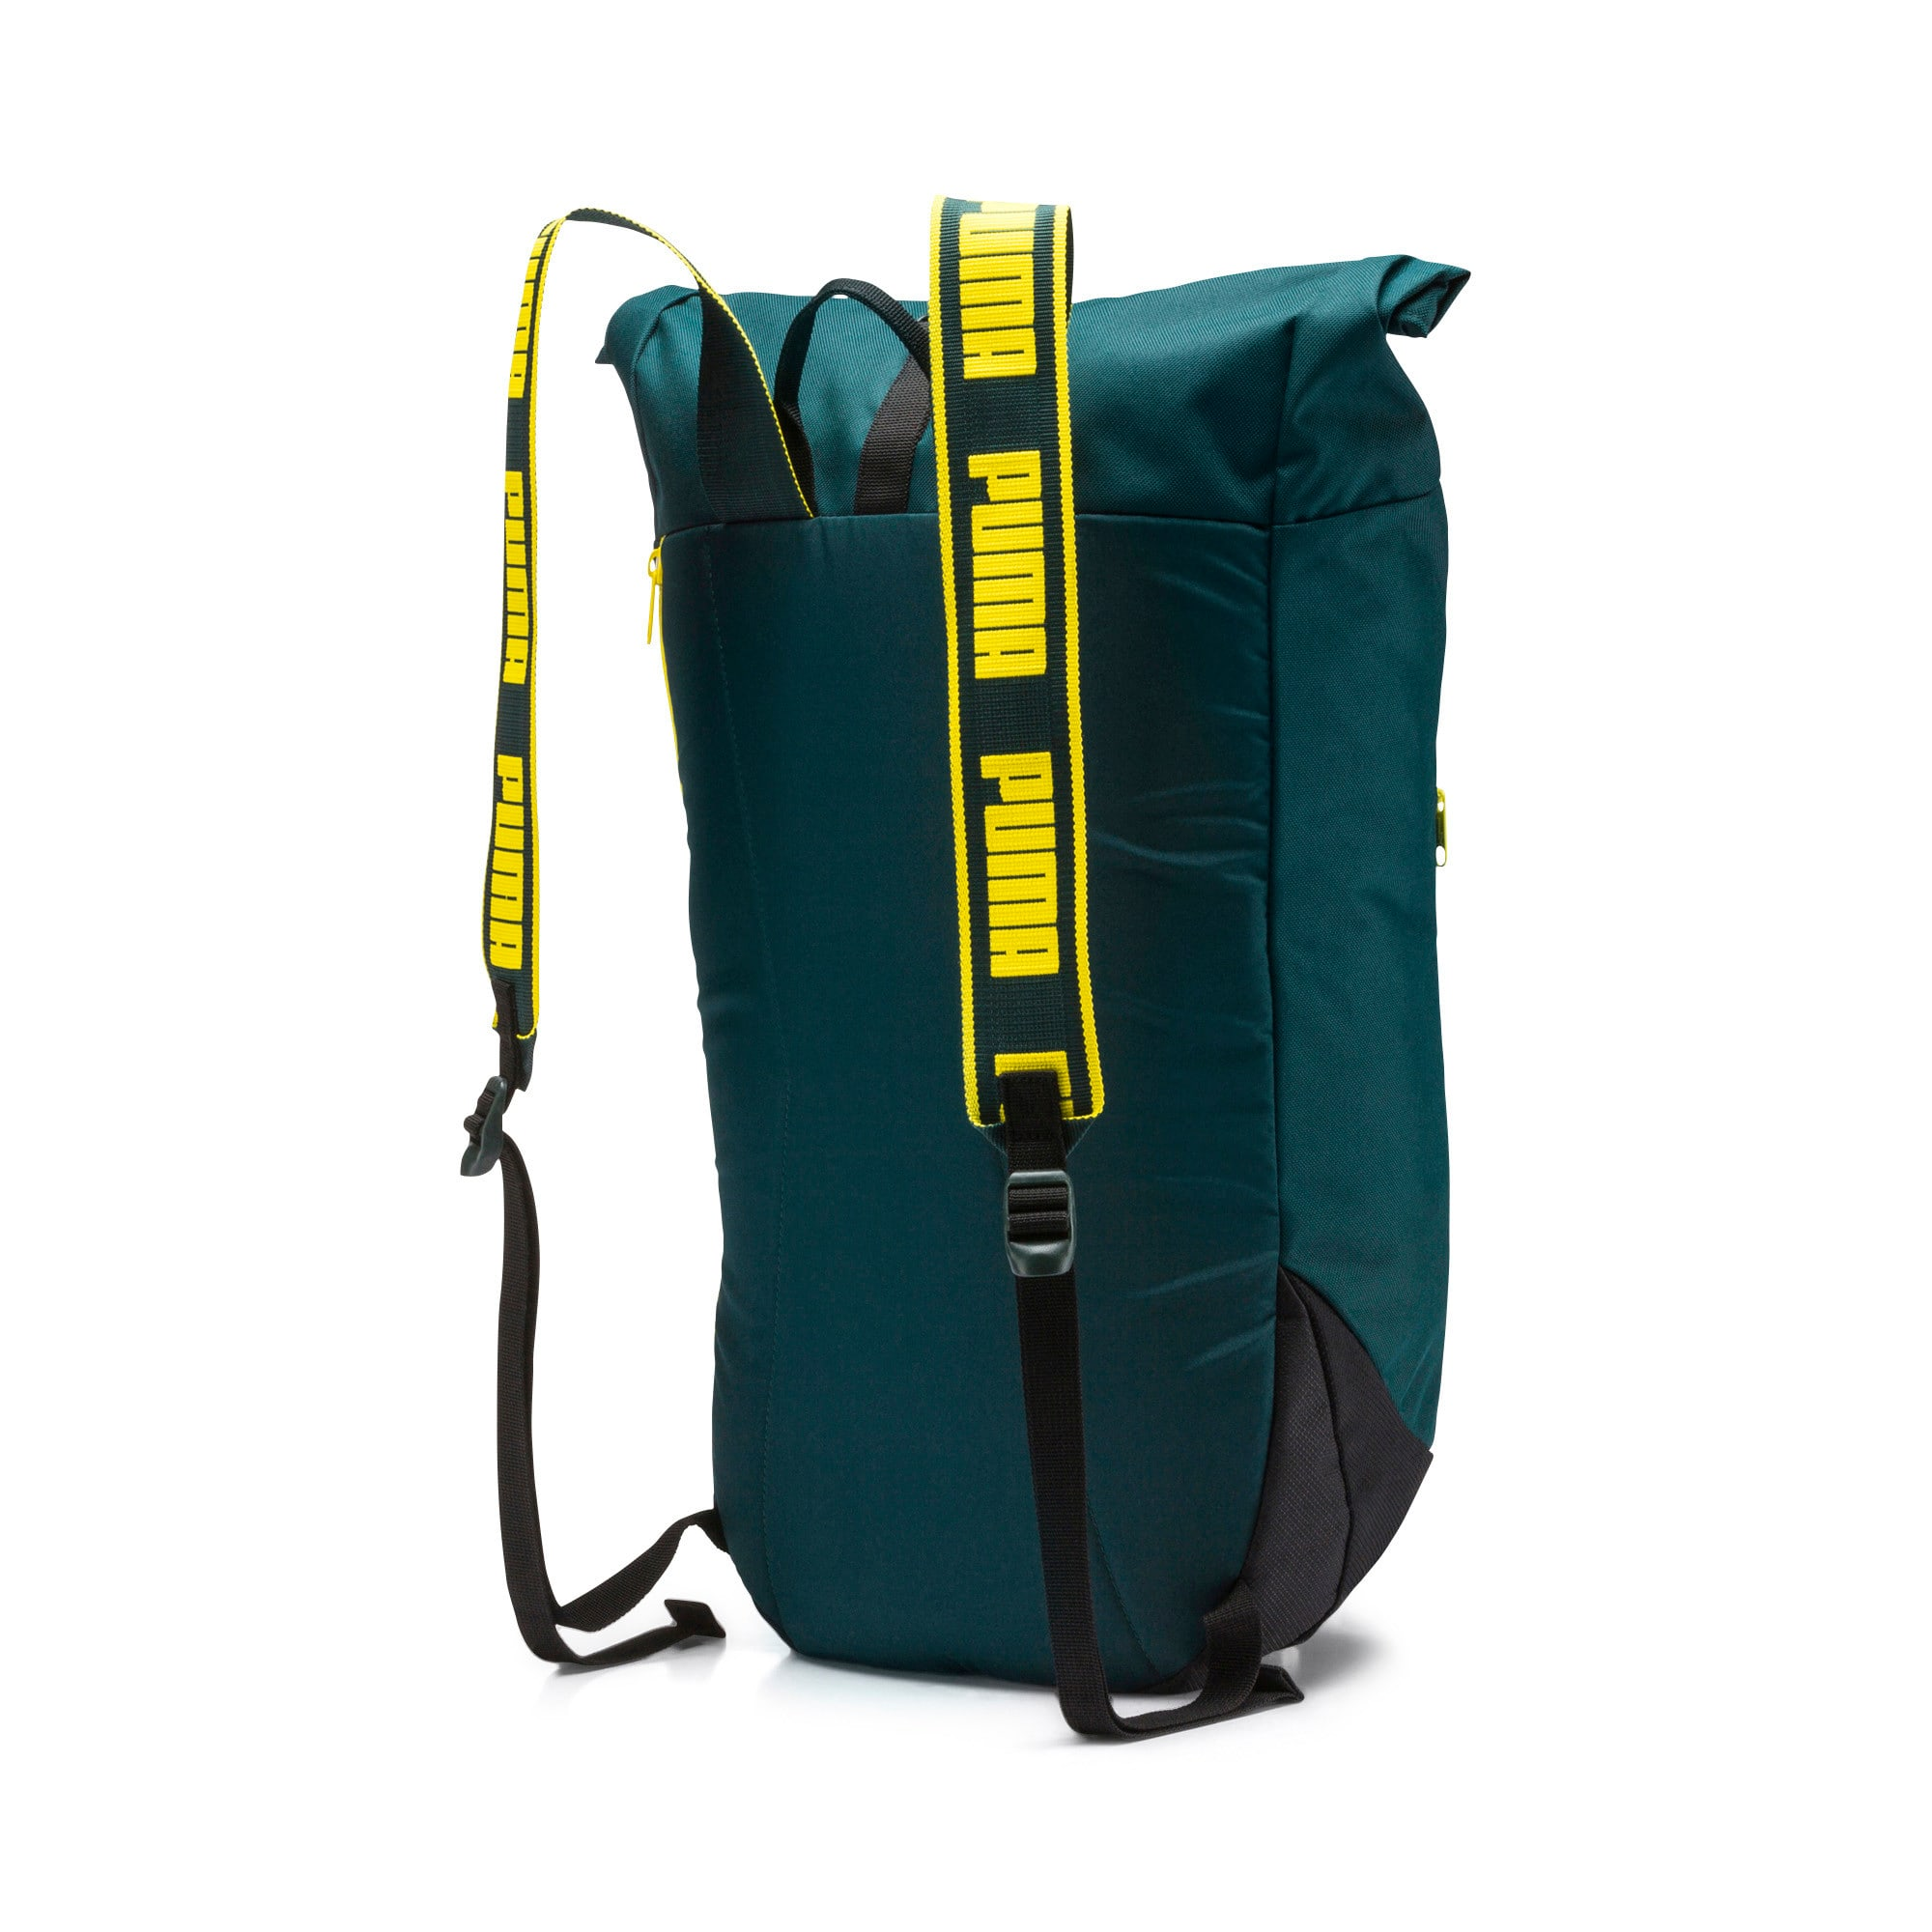 Thumbnail 2 of Sole Backpack, Ponderosa Pine-Yellow, medium-IND